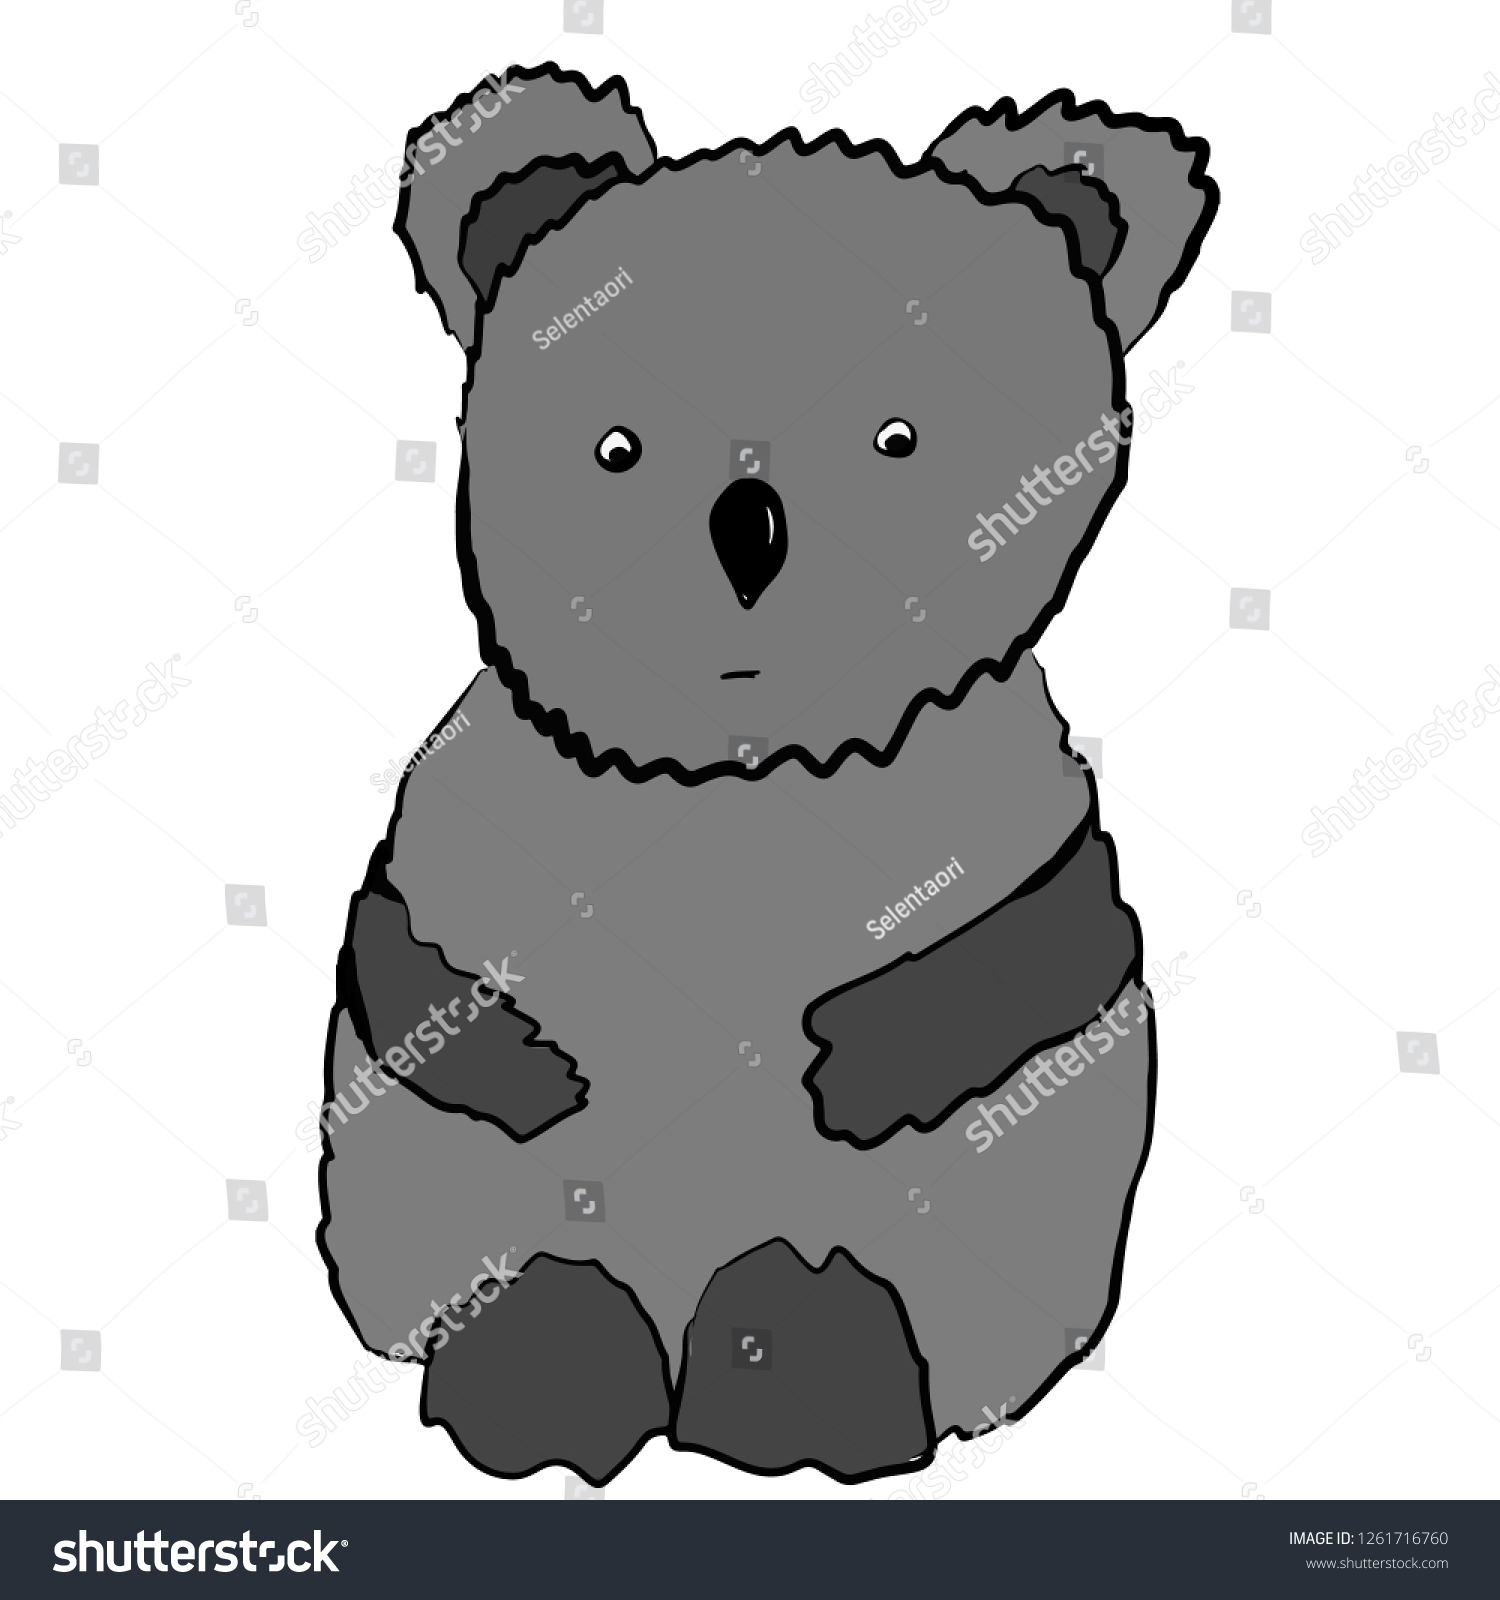 Gray sad emotional koala cartoon sketch drawing by hand illustration